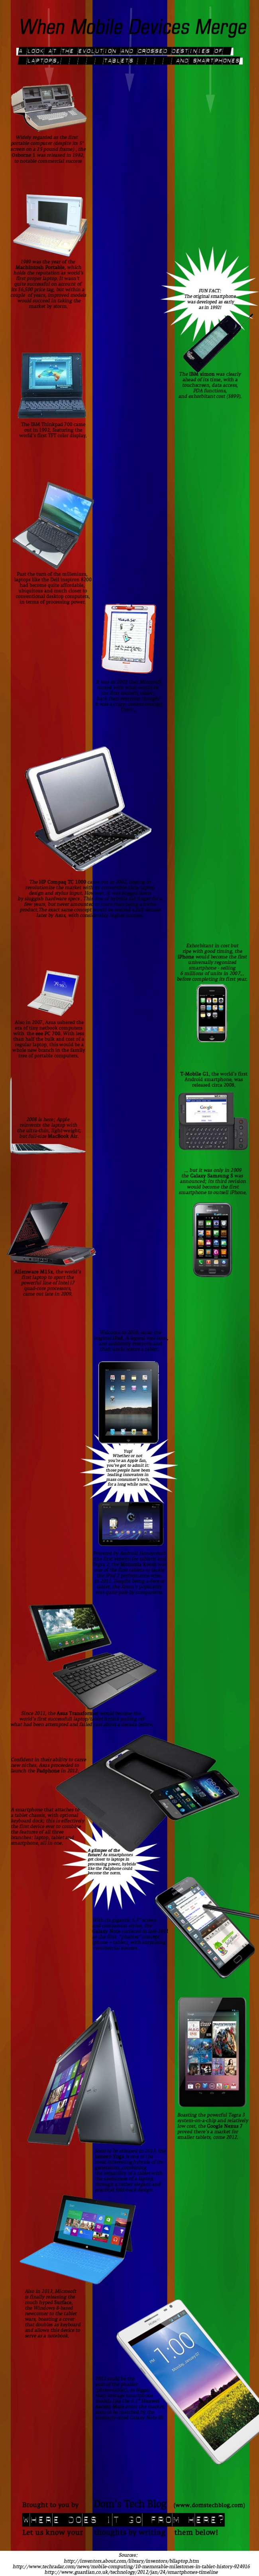 evolution of portable computers